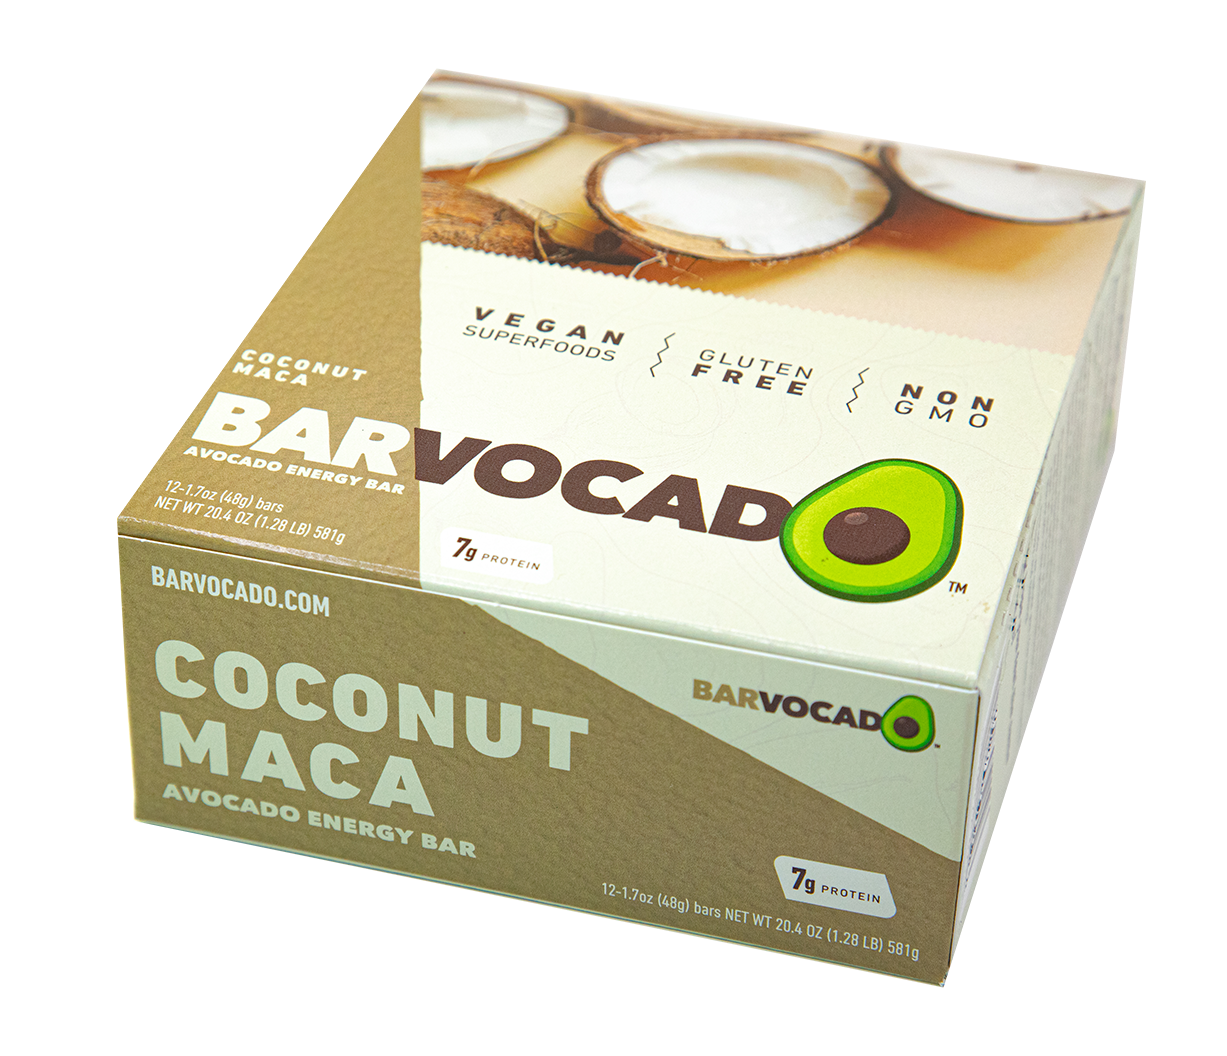 Coconut Maca: 12 Bar Box